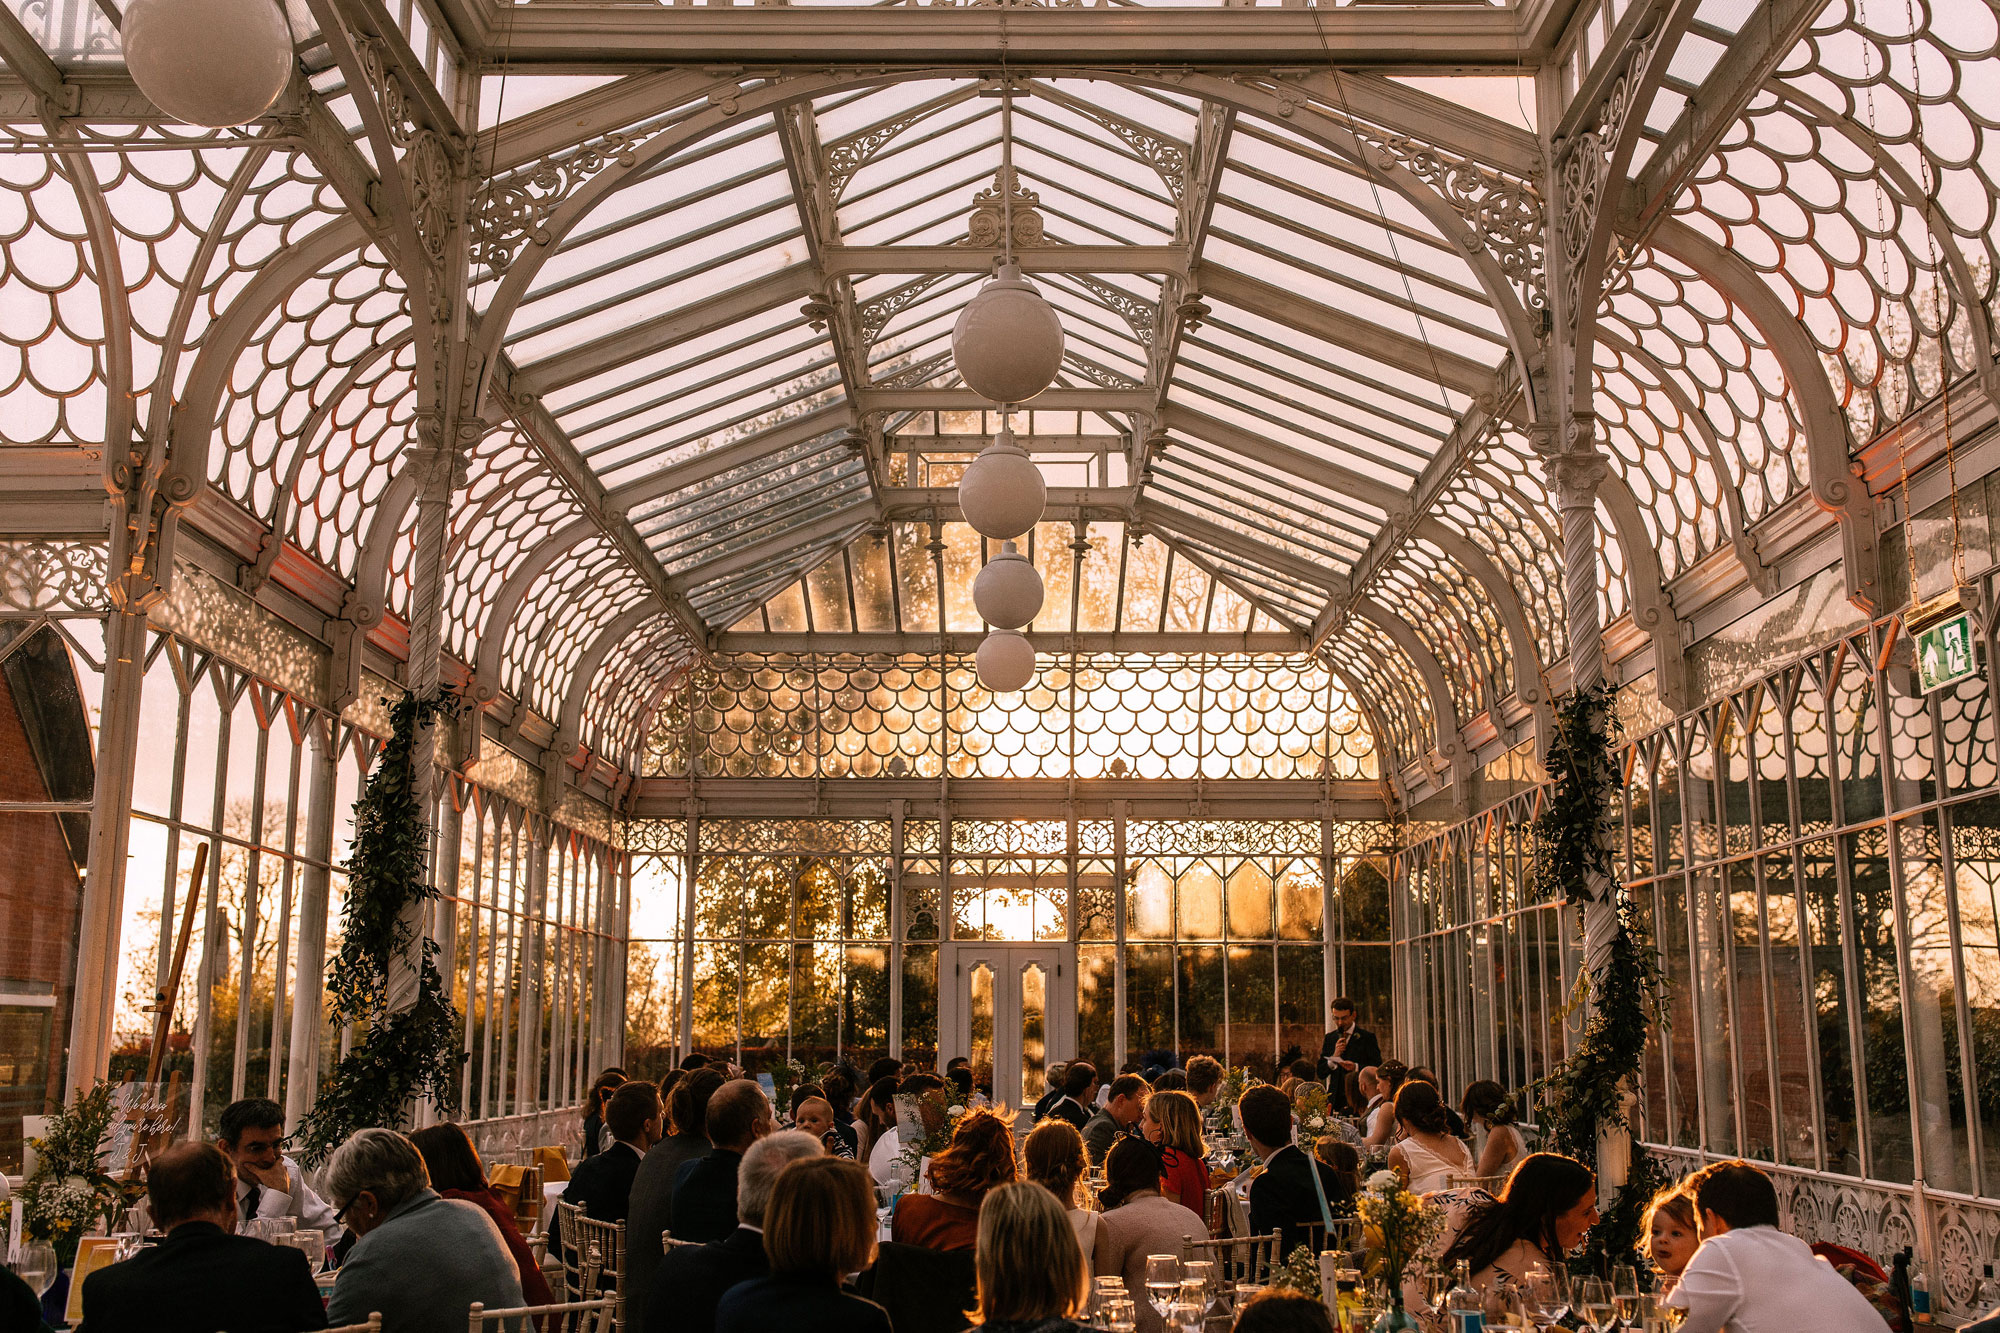 A group of people sitting down to dinner in a conservatory at dusk. The conservatory is filled with gentle orange light.